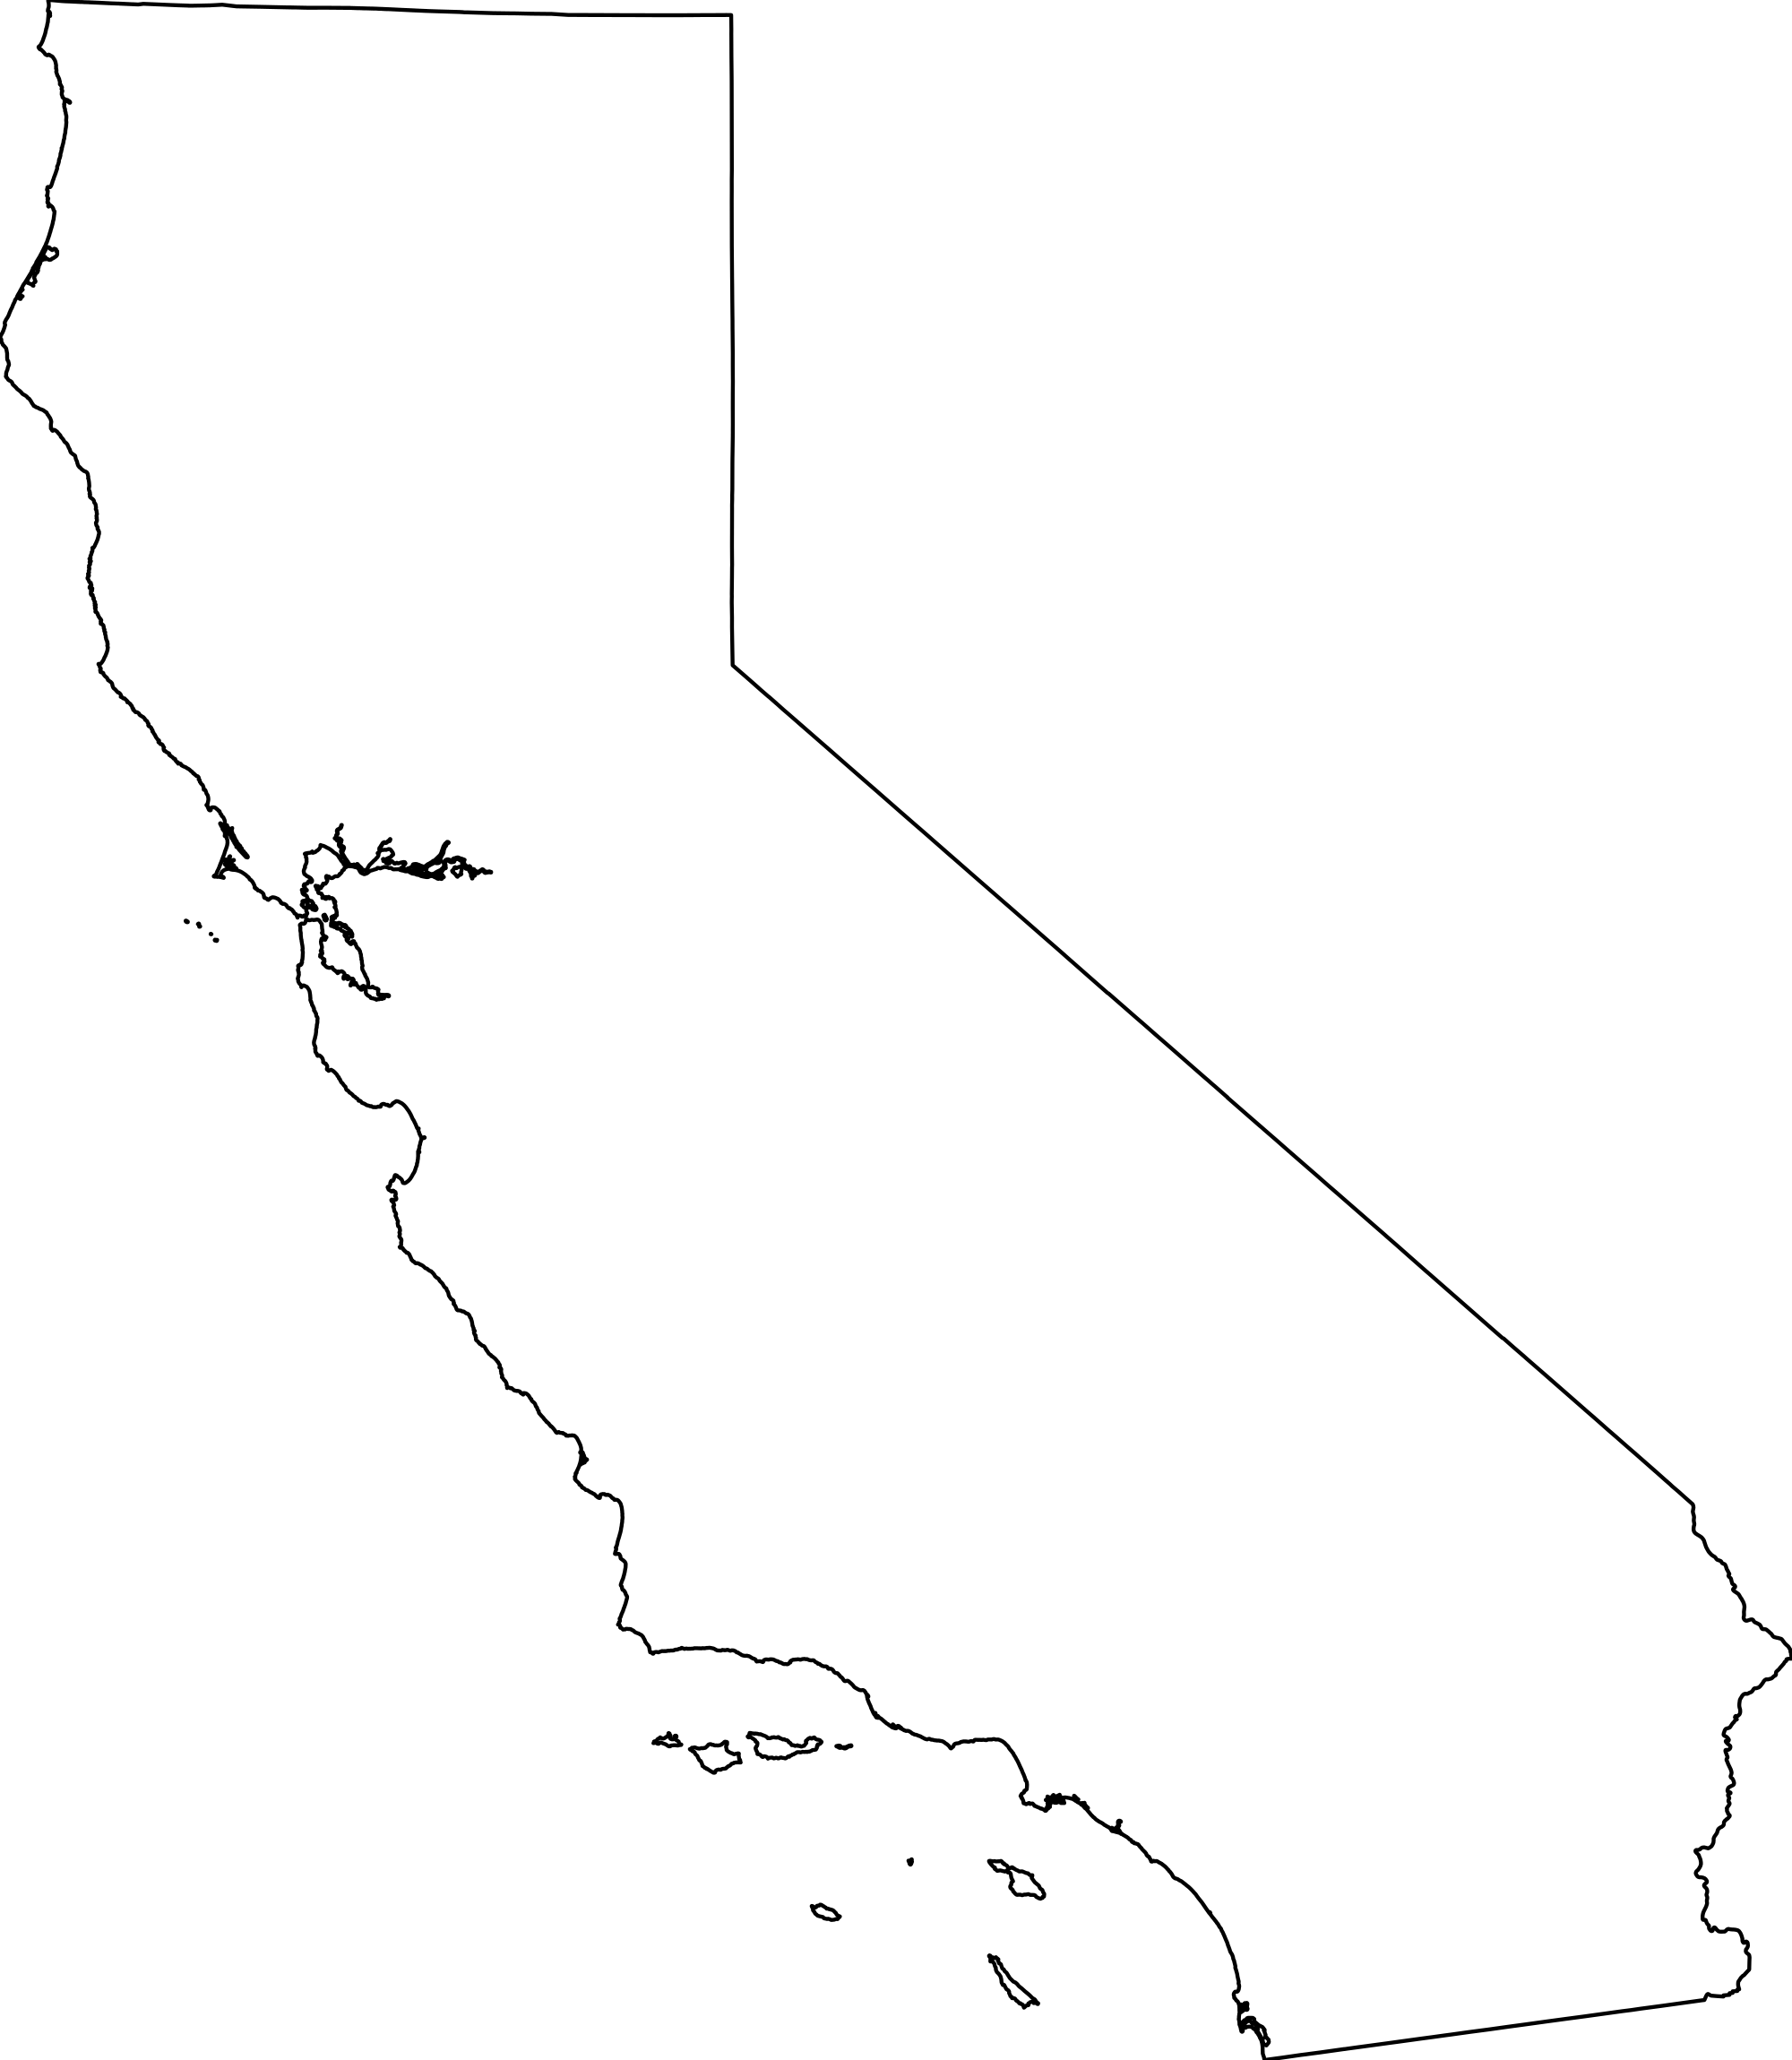 Us map of california state clipart svg File:Map of California outline.svg - Wikimedia Commons svg